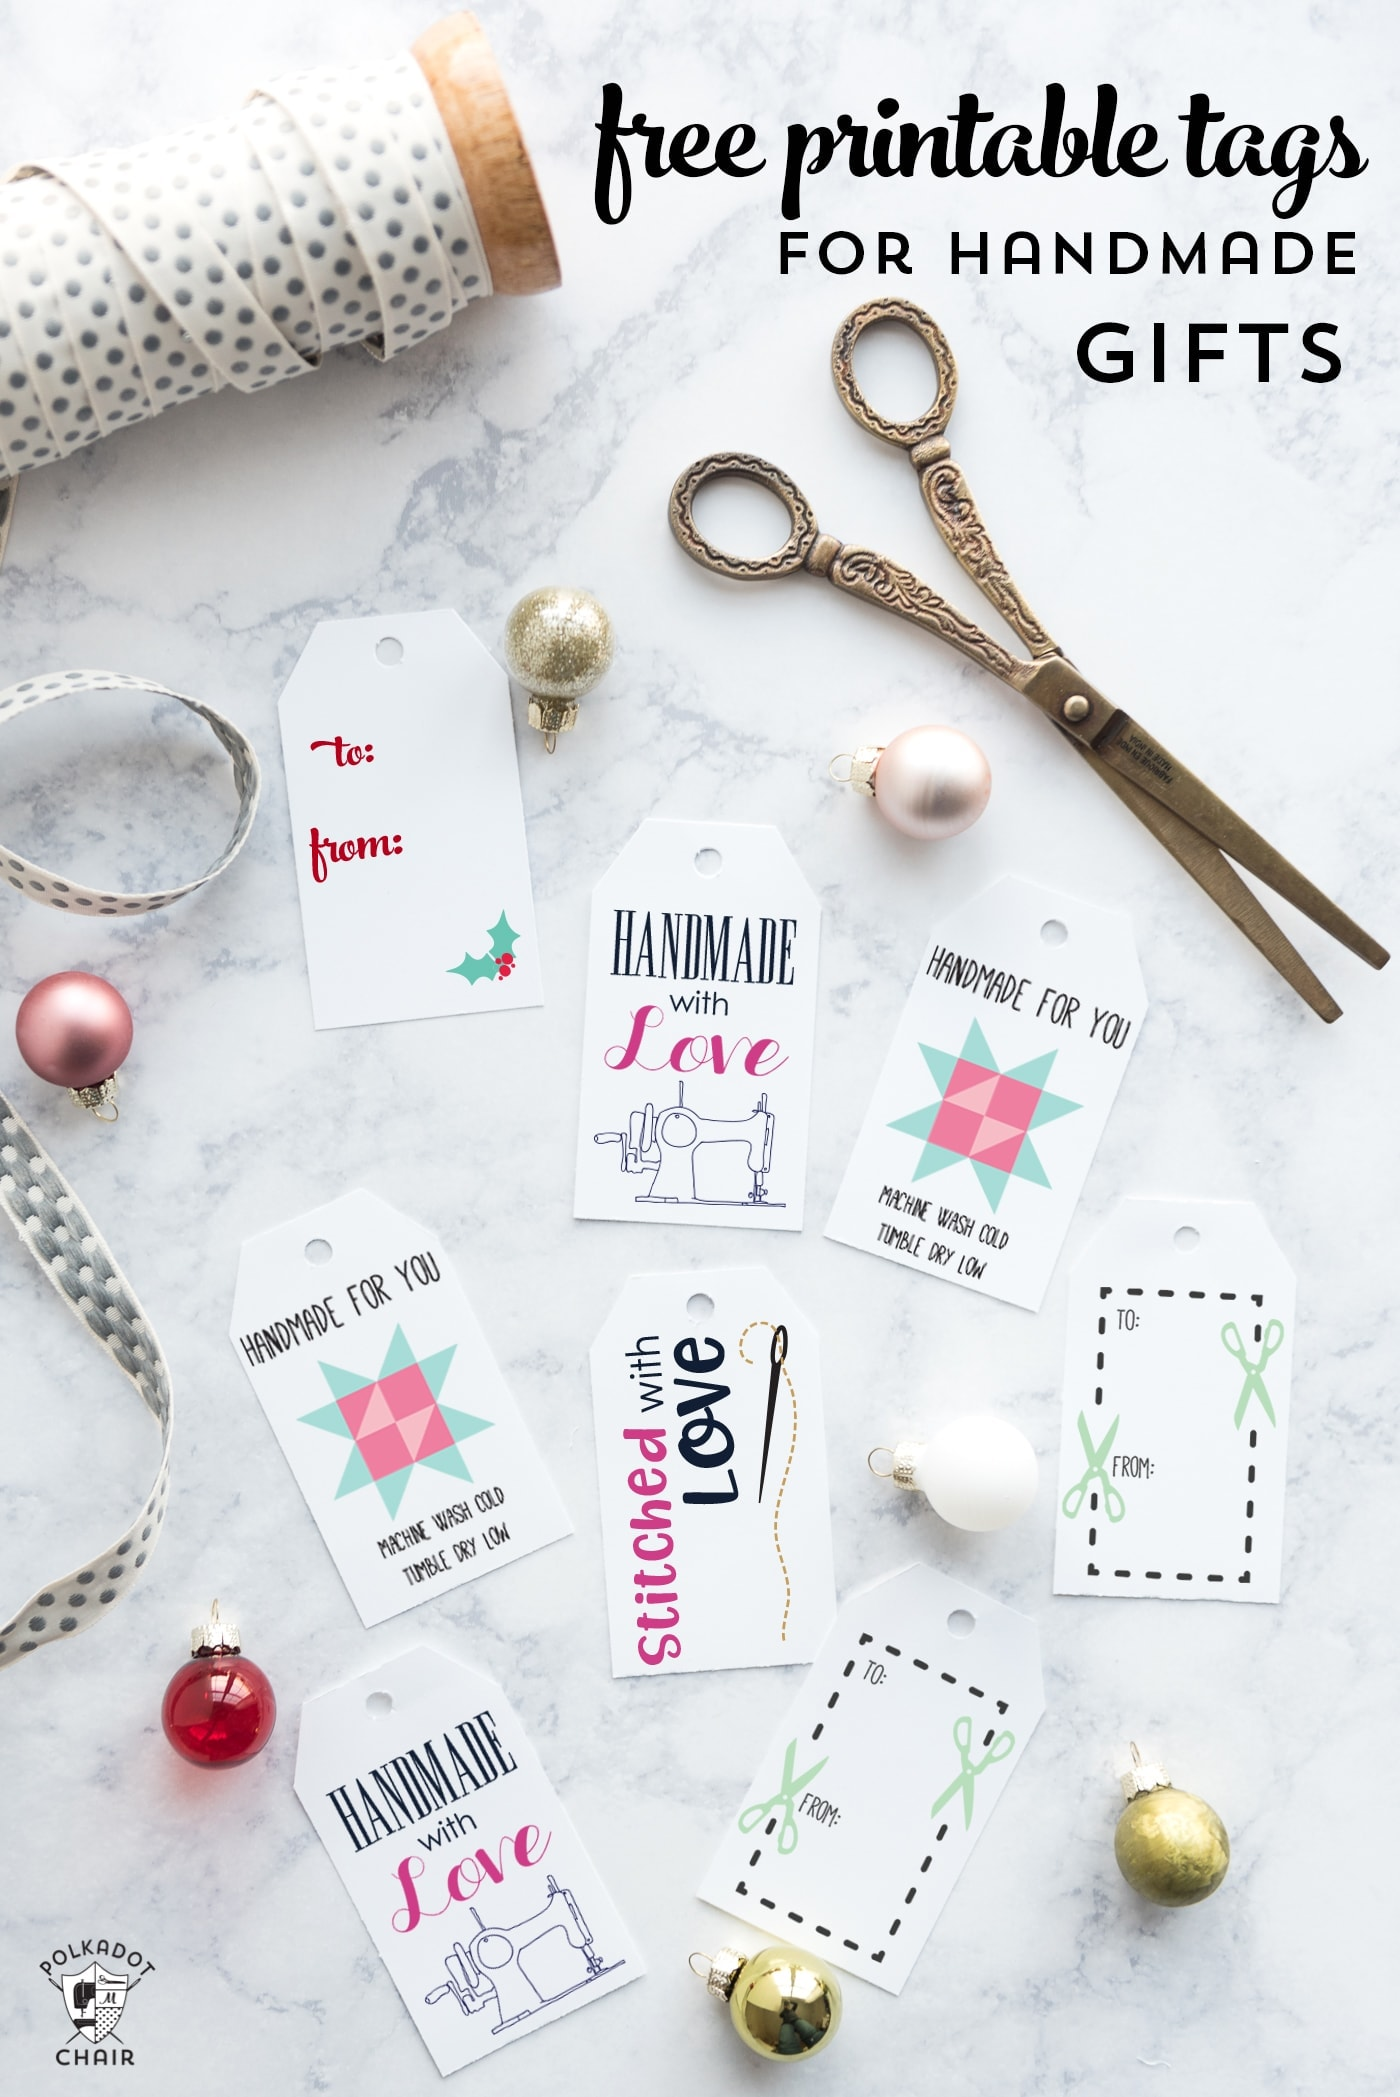 photograph about Free Printable Gift Tags named 10+ Totally free Printable Reward Tags Best for Home made Items